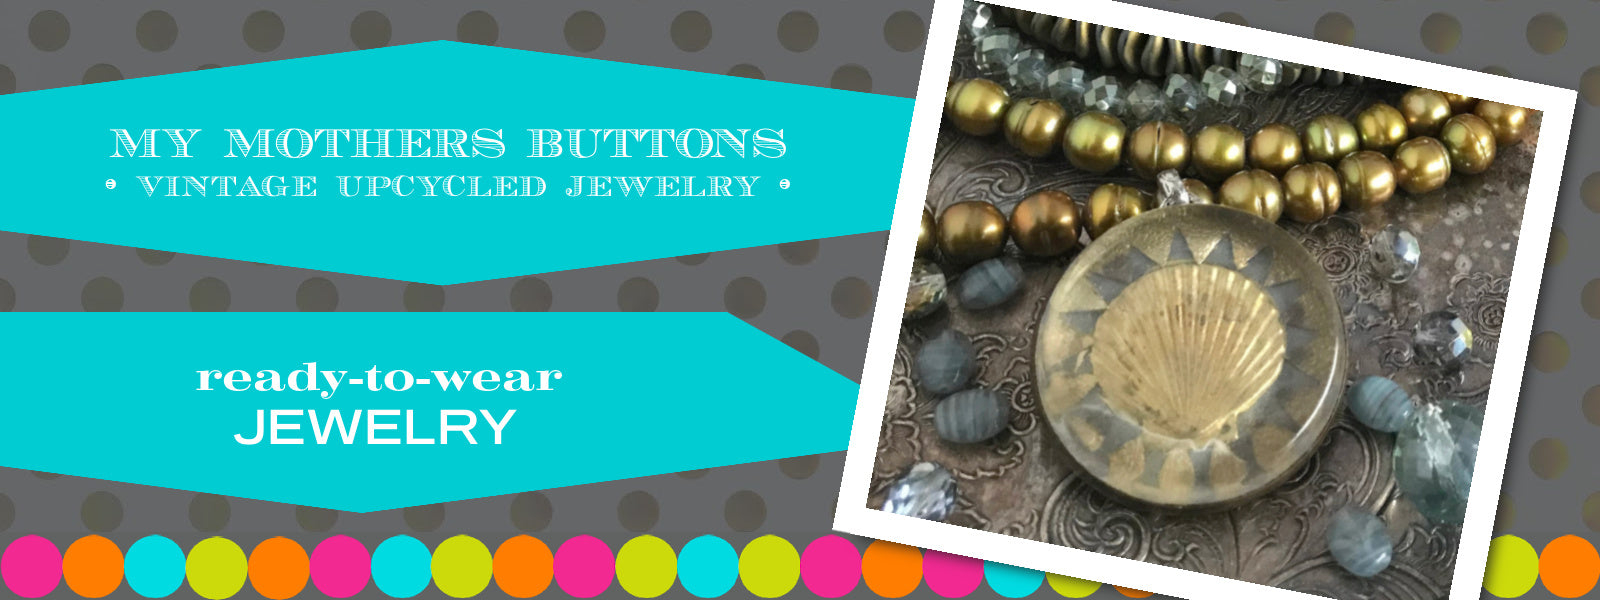 The creators of My Mothers Buttons jewelry transform the finest antique buttons and other circa 1800's treasures from all over Europe to create one-of-a-kind heirloom jewelry. Suzie Q Studio is thrilled to share this wonderful jewelry line with you.